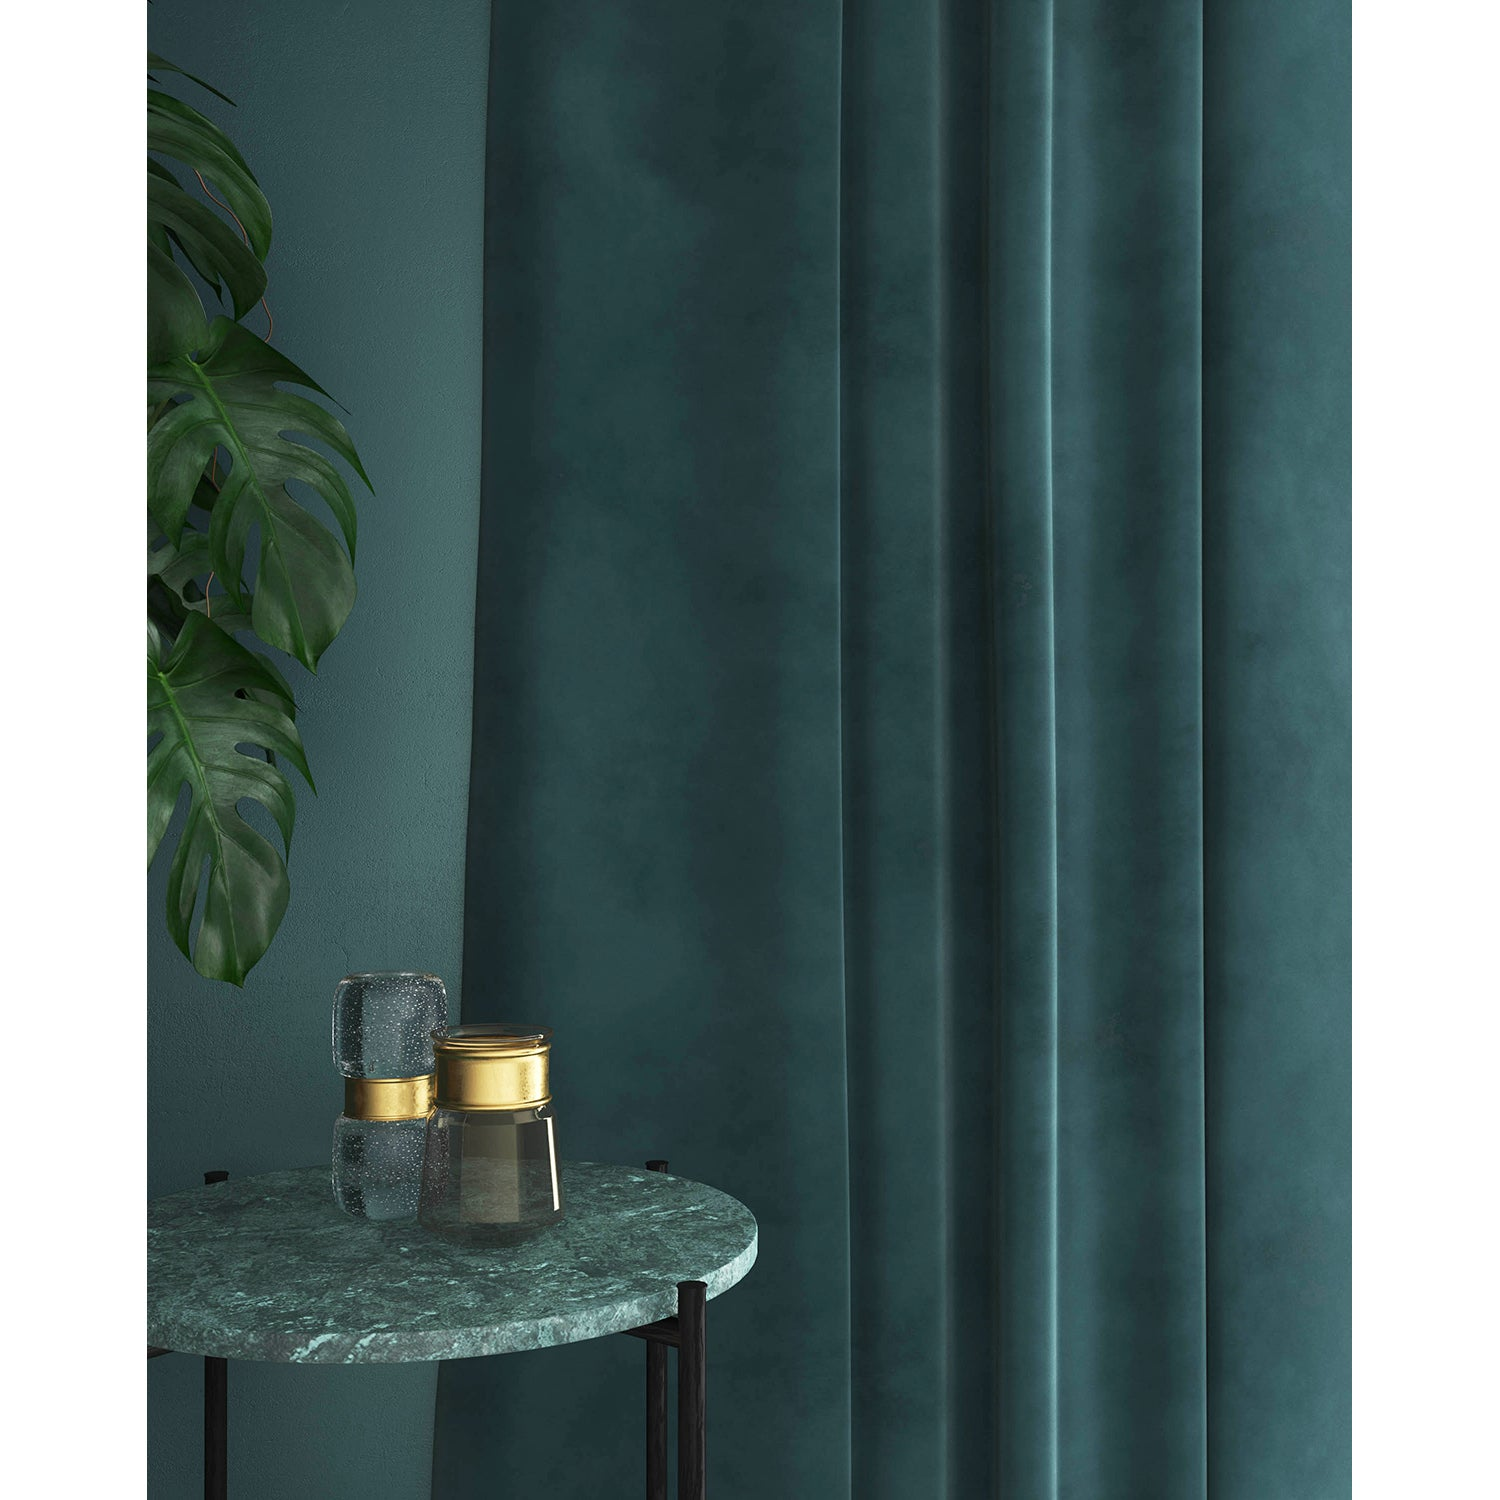 Curtain in a blue velvet fabric with a stain resistant finish